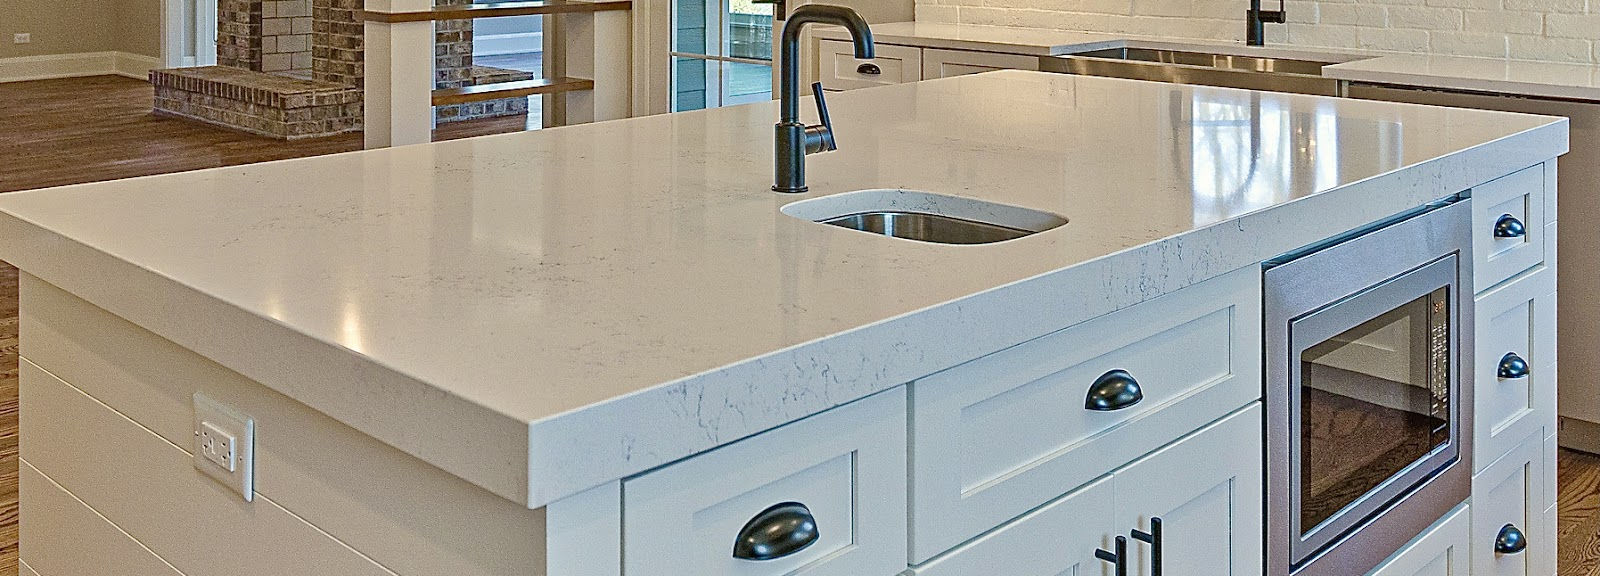 Close up of a quartz countertop with marble veining  on an kitchen island. Featuring a prep sink and stainless steel microwave drawer and dark hardware to contrast the white cabinets.